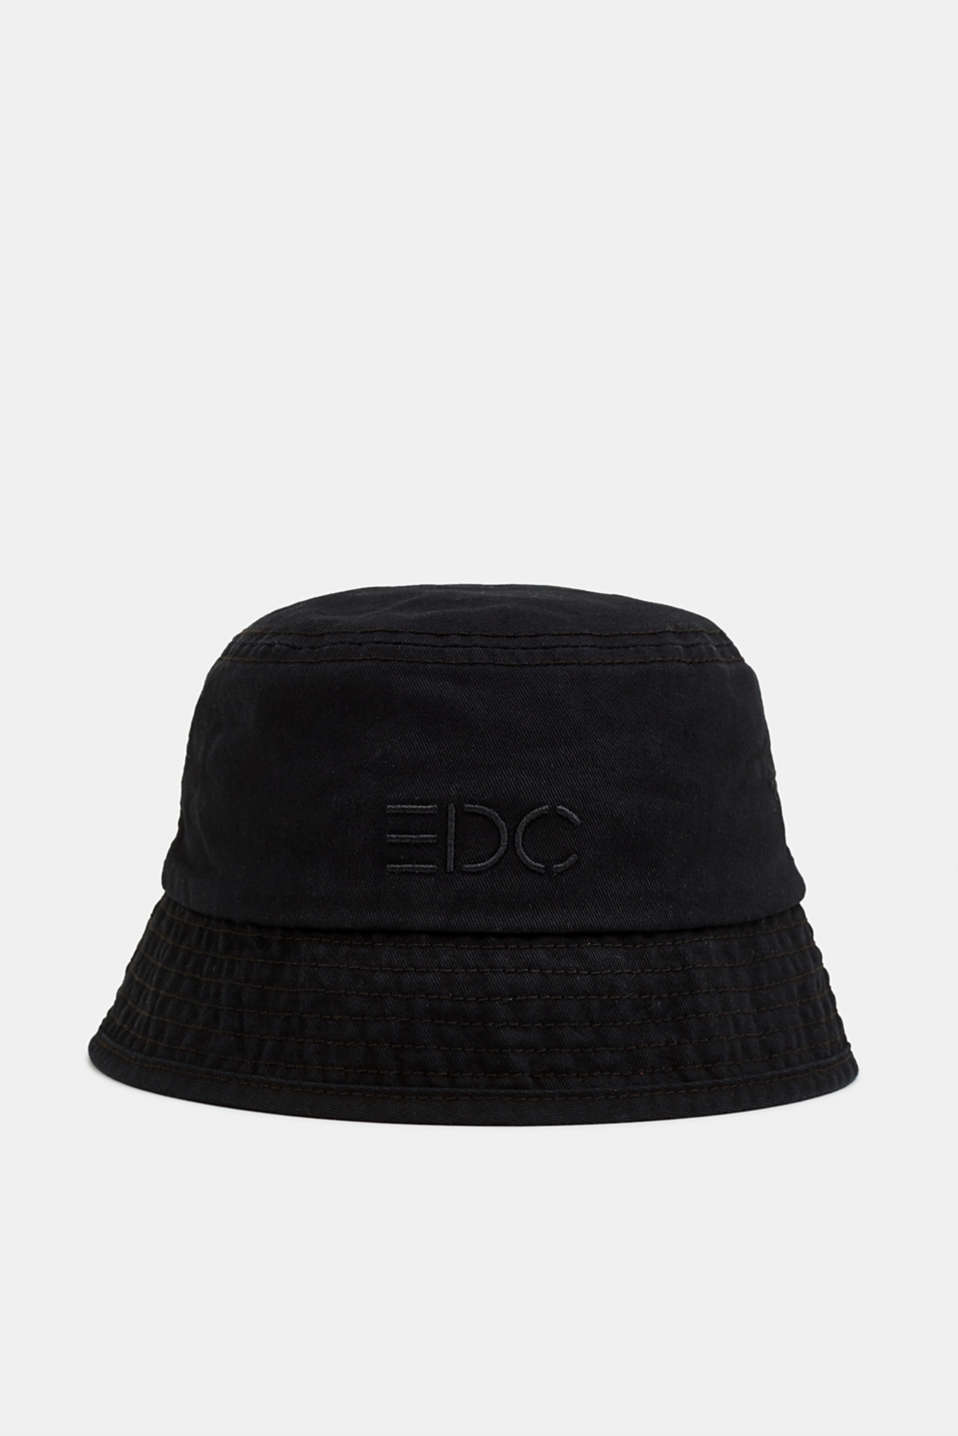 edc - Bucket hat made of 100% cotton